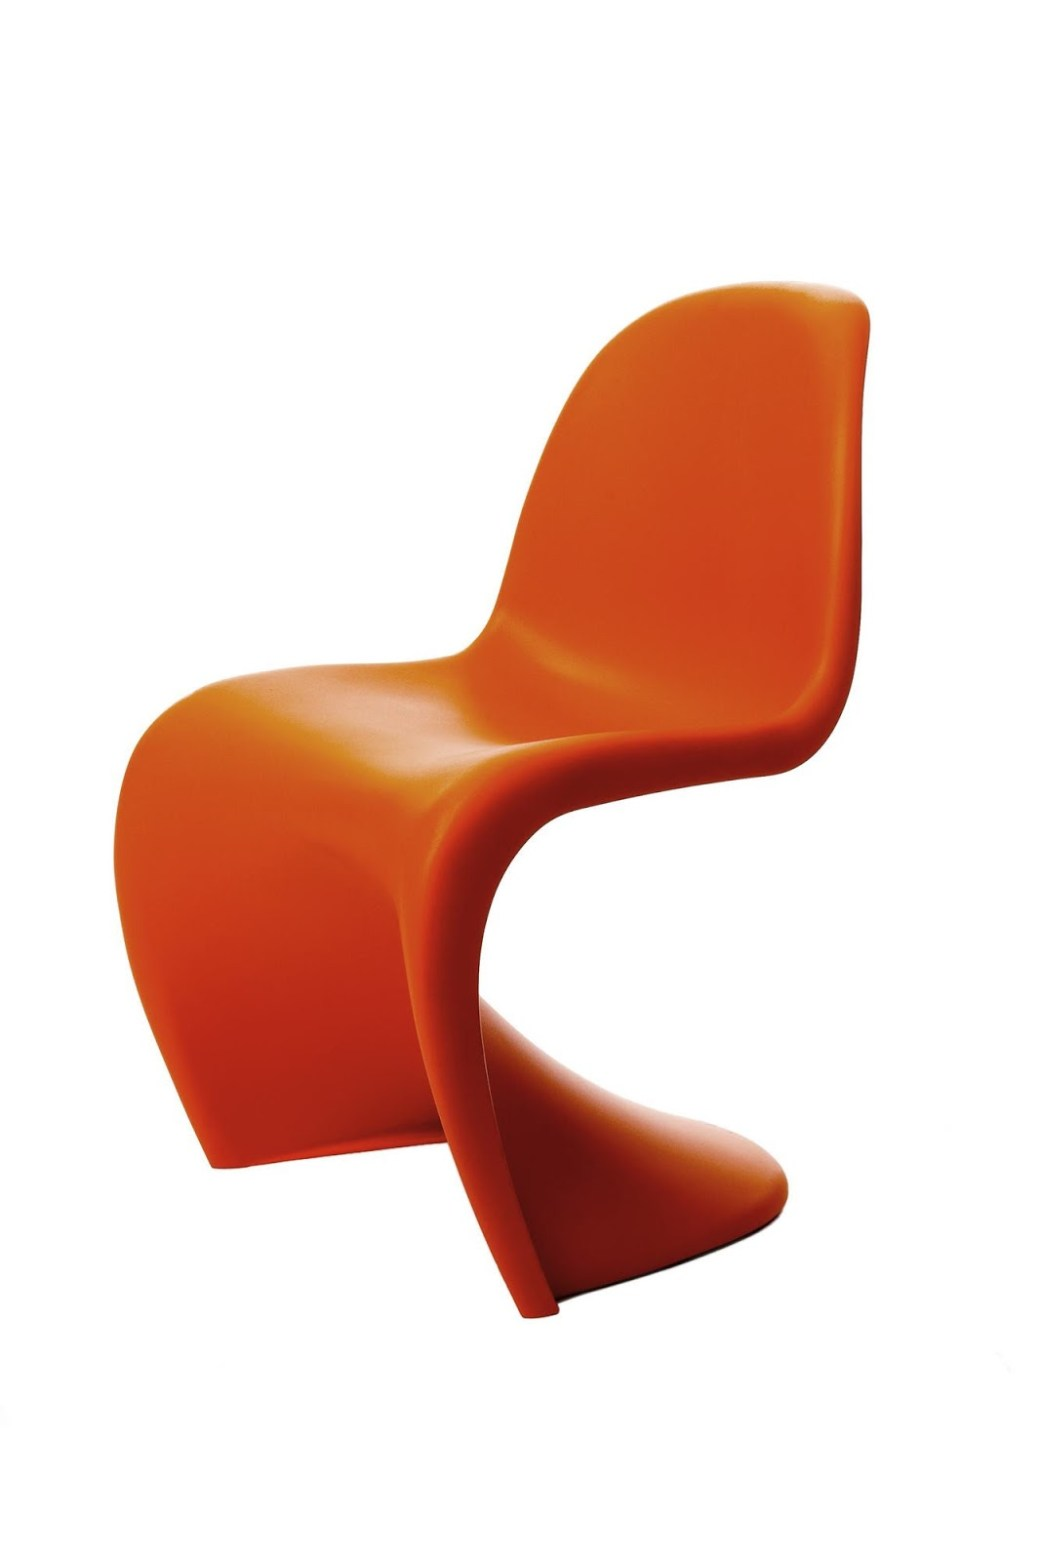 Molded Side Chair by Verner Panton.